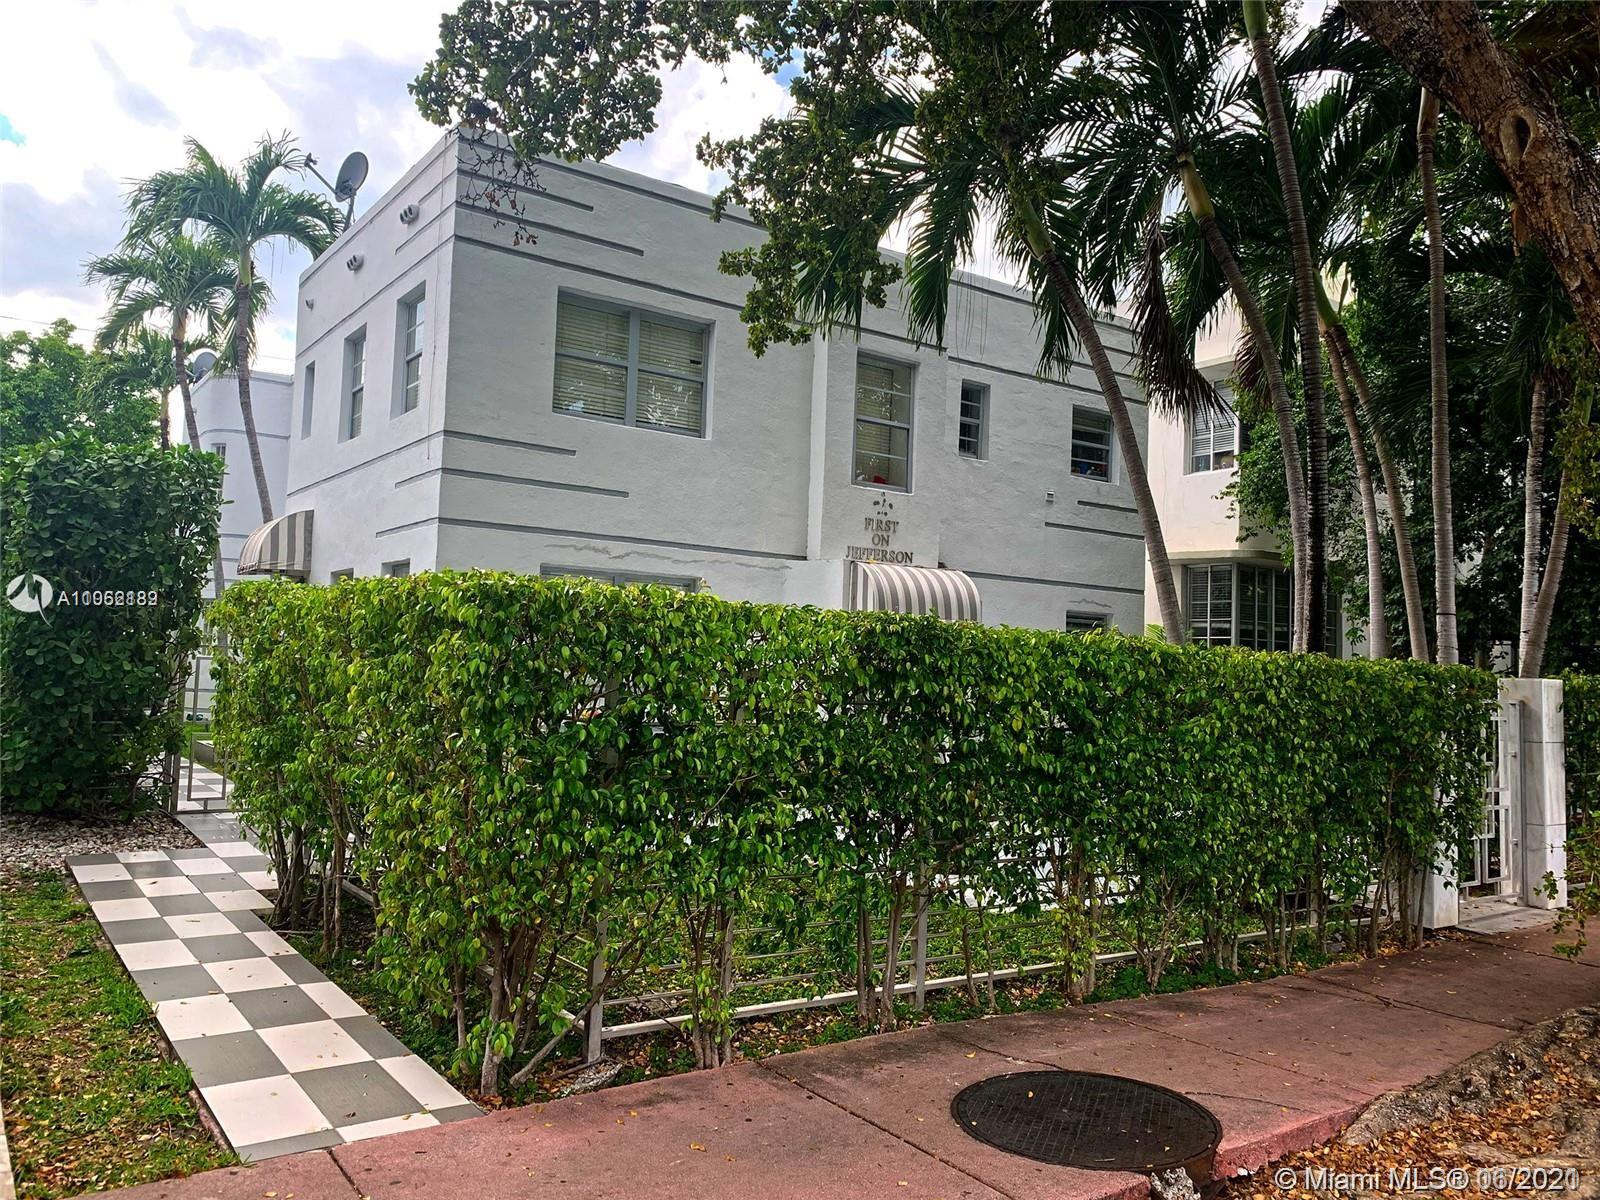 Amazing TURN KEY READY property that give immediate ROI. Miami Beach unit with stainless steel appliances. walking distance to everything, beach, stores, restaurants etc... Location is absolutely perfect. A MUST SEE. Don't miss this opportunity.